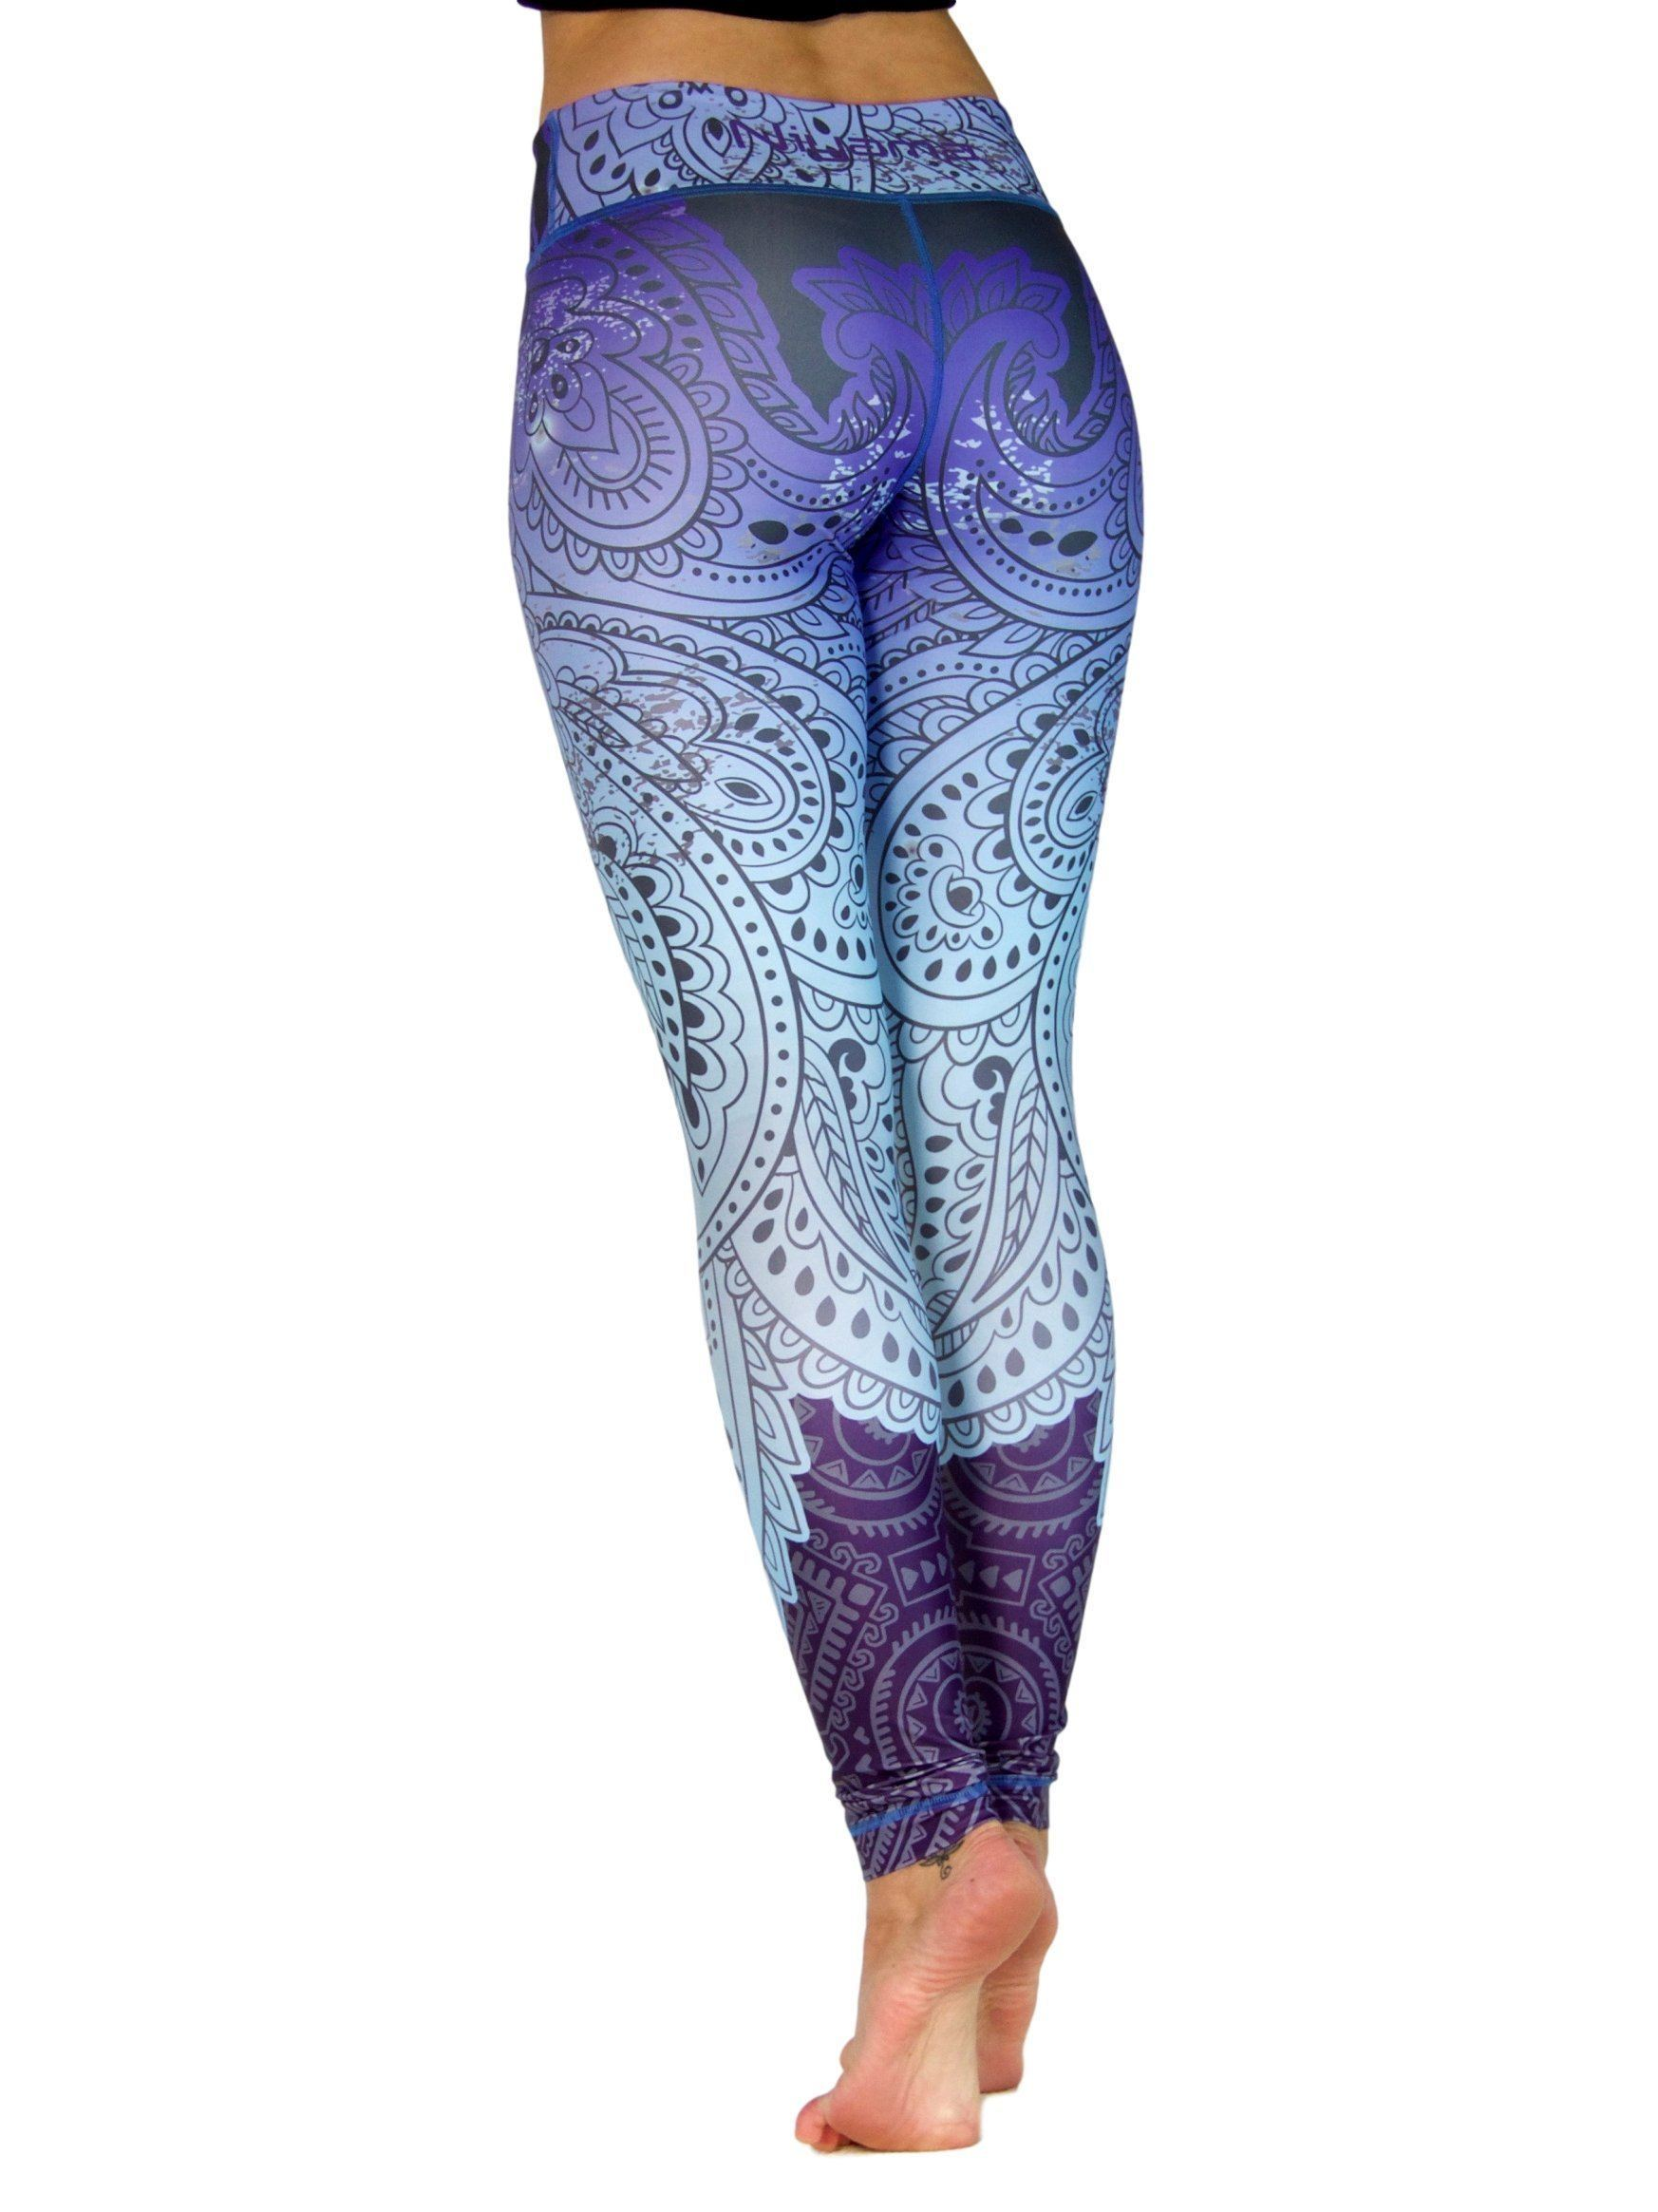 Morning Glory by Niyama - High Quality, , Yoga Legging for Movement Artists.